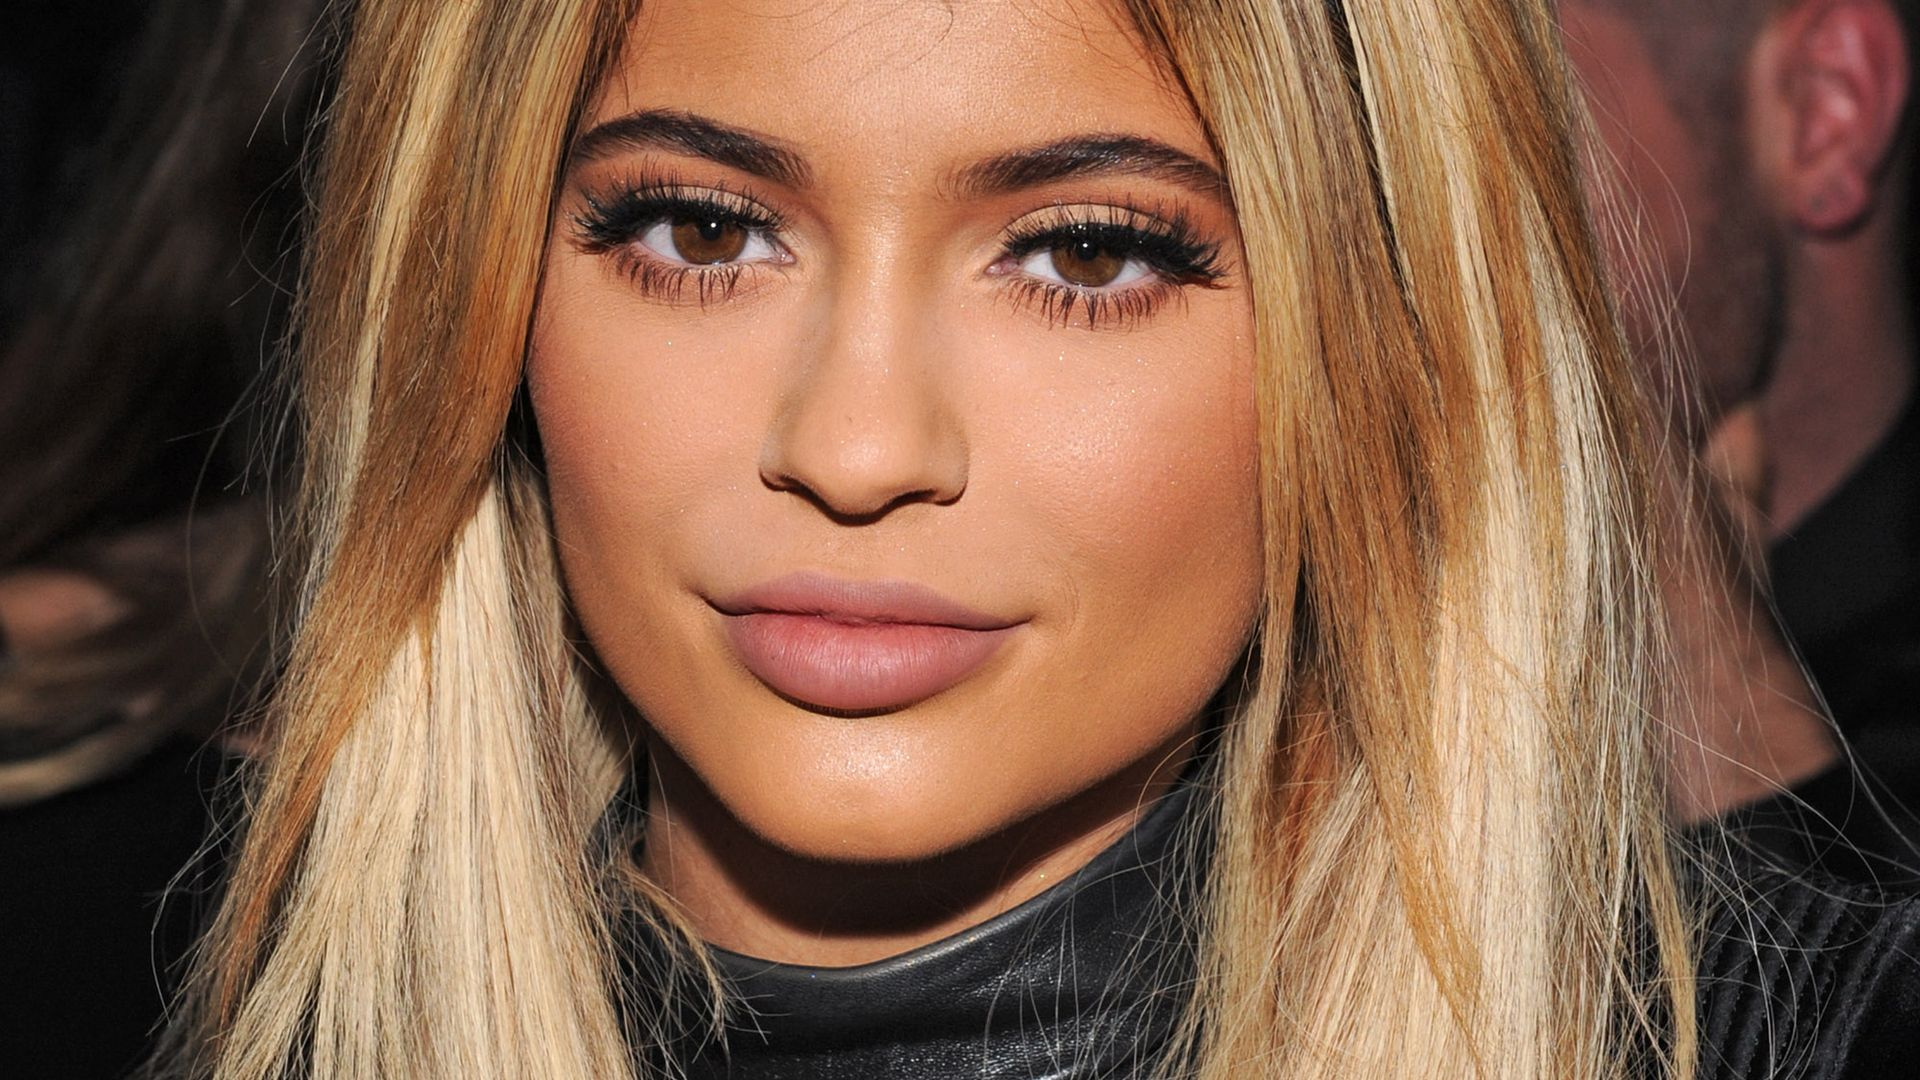 How To Get Larger Lips Naturally